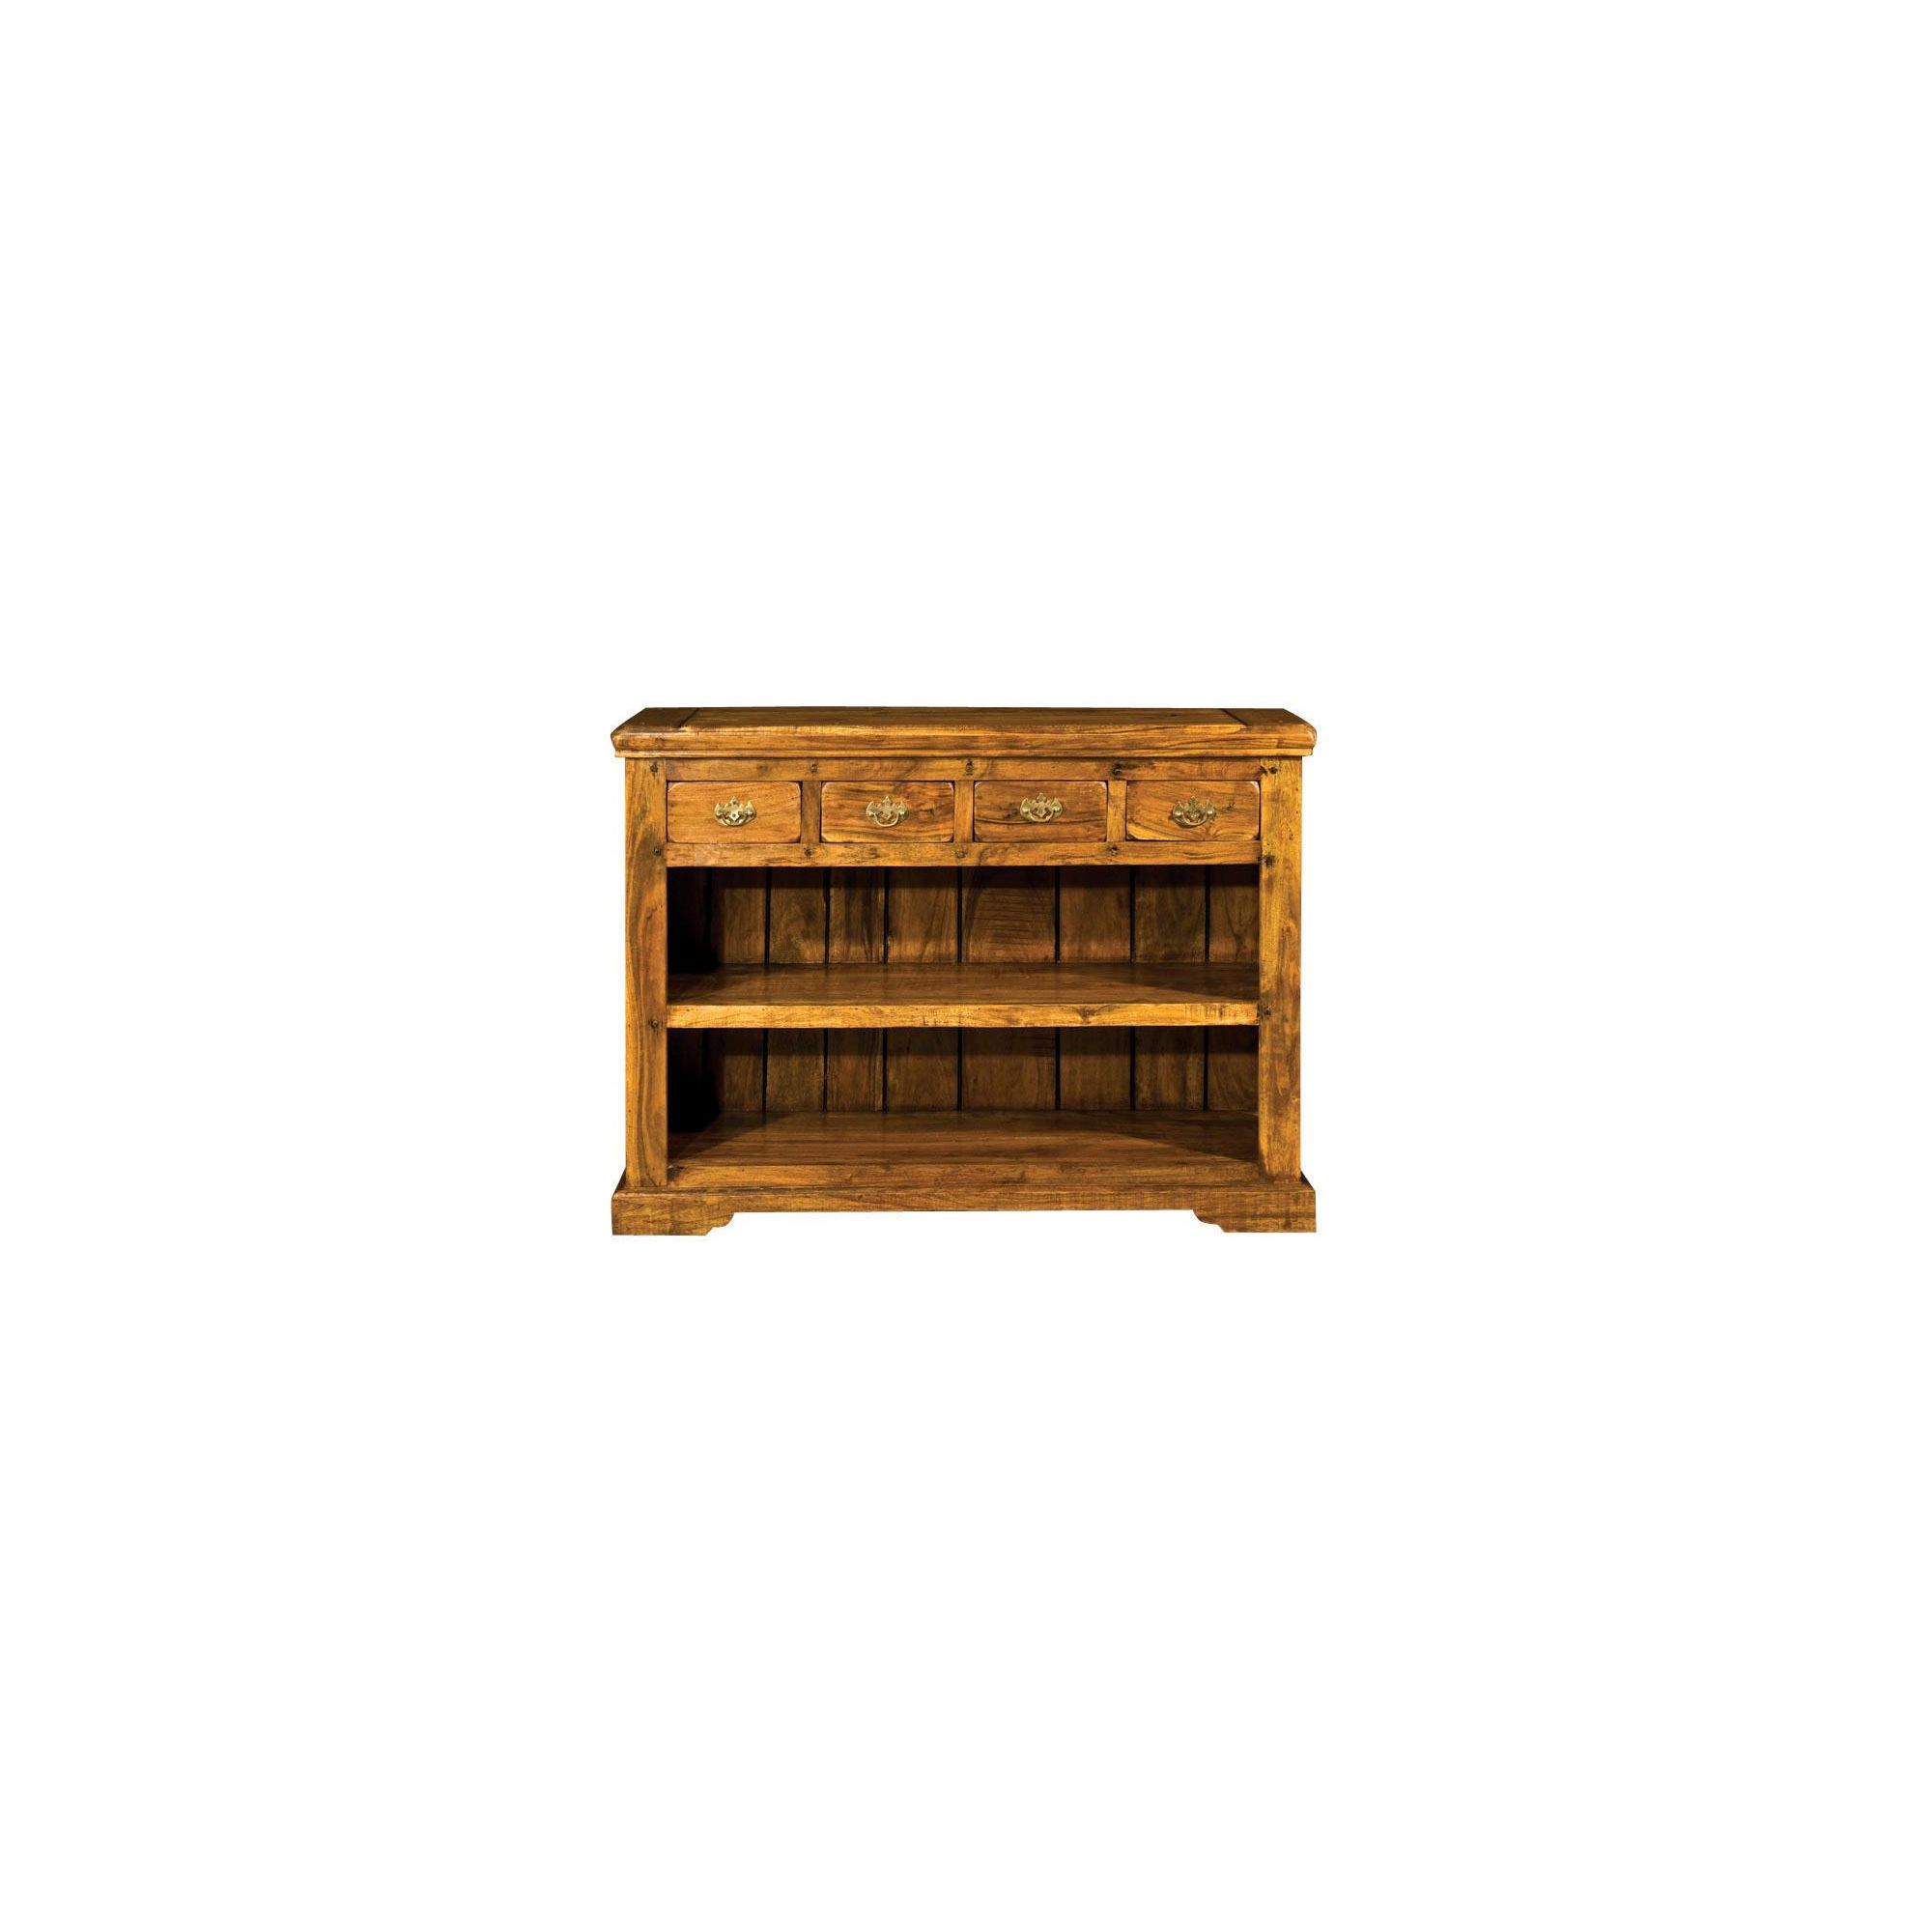 Alterton Furniture Granary Low 4 Drawer Bookcase at Tesco Direct